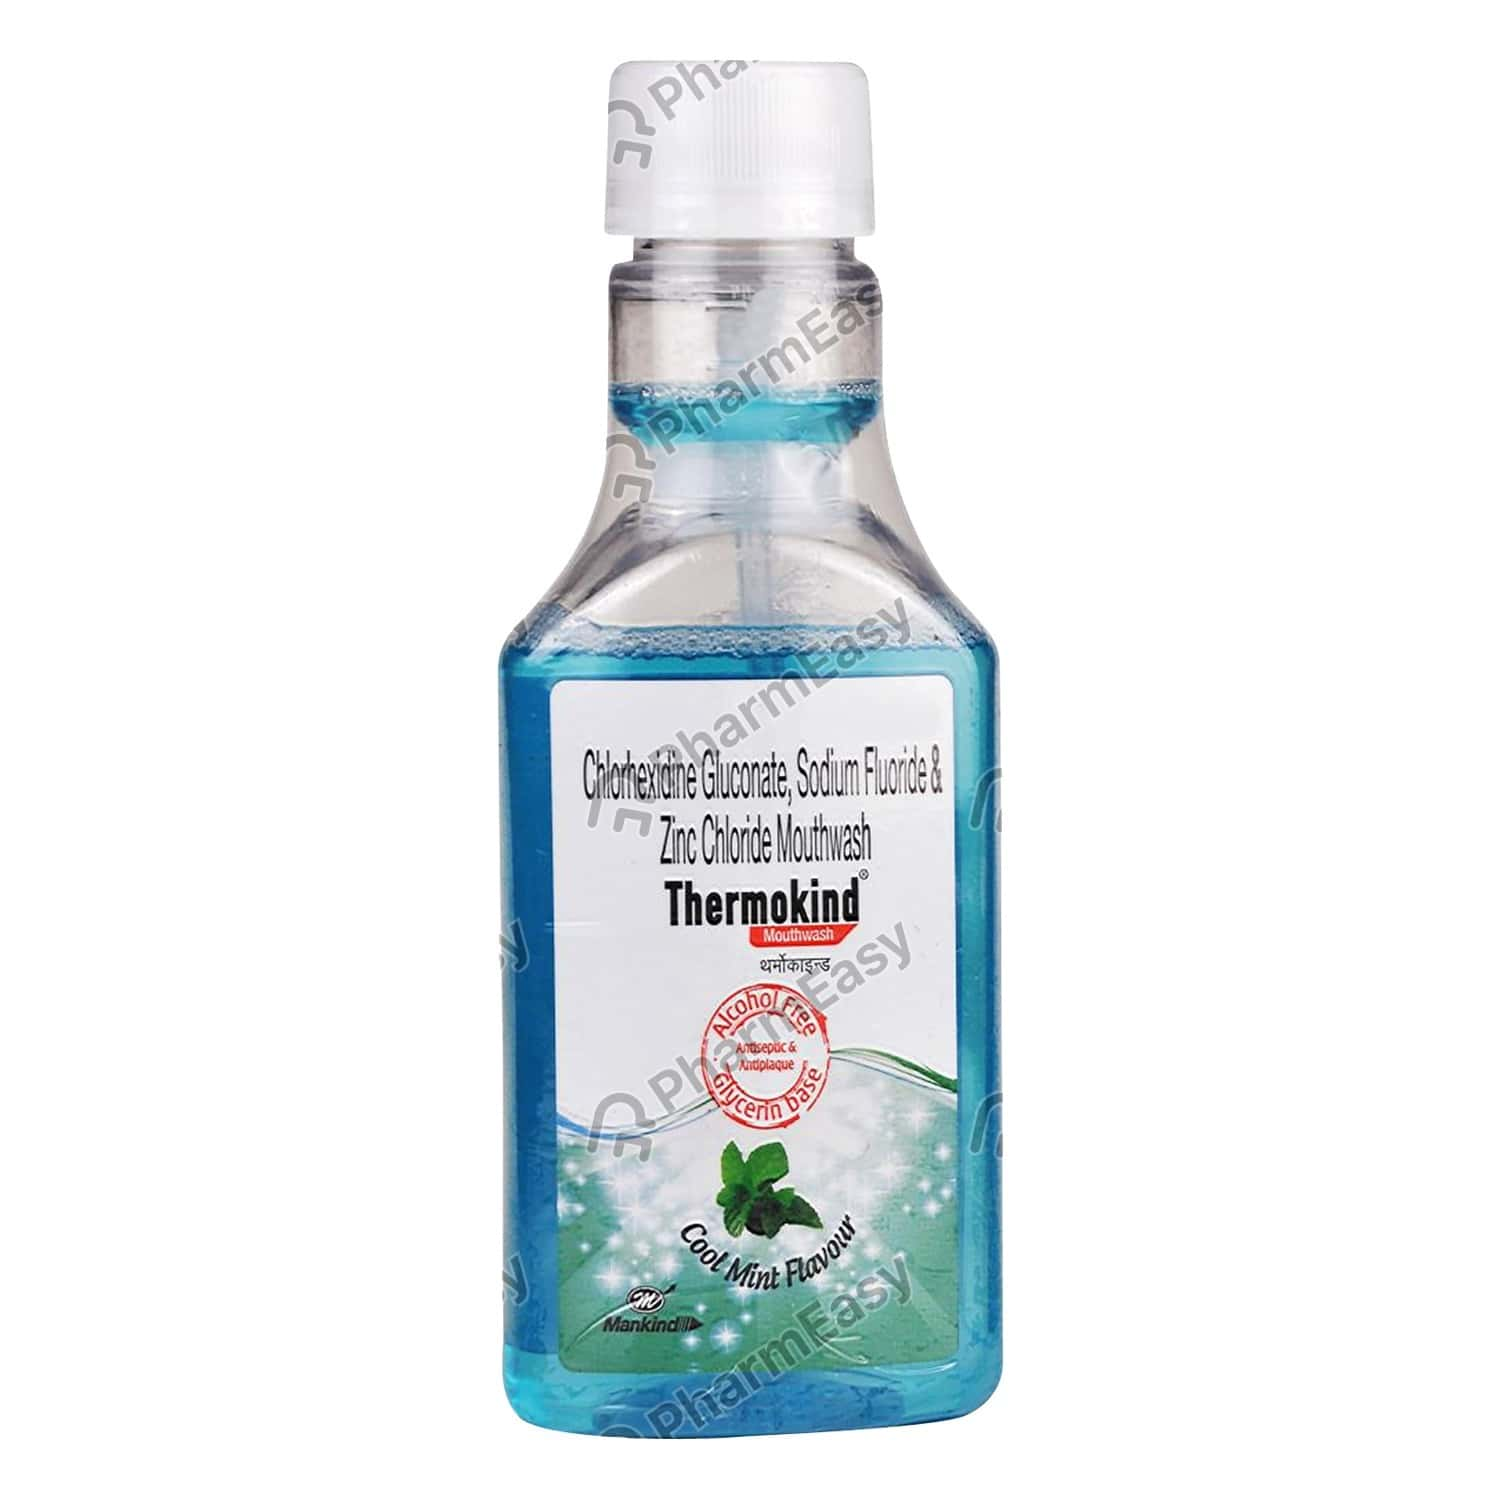 Thermokind Mouth Wash